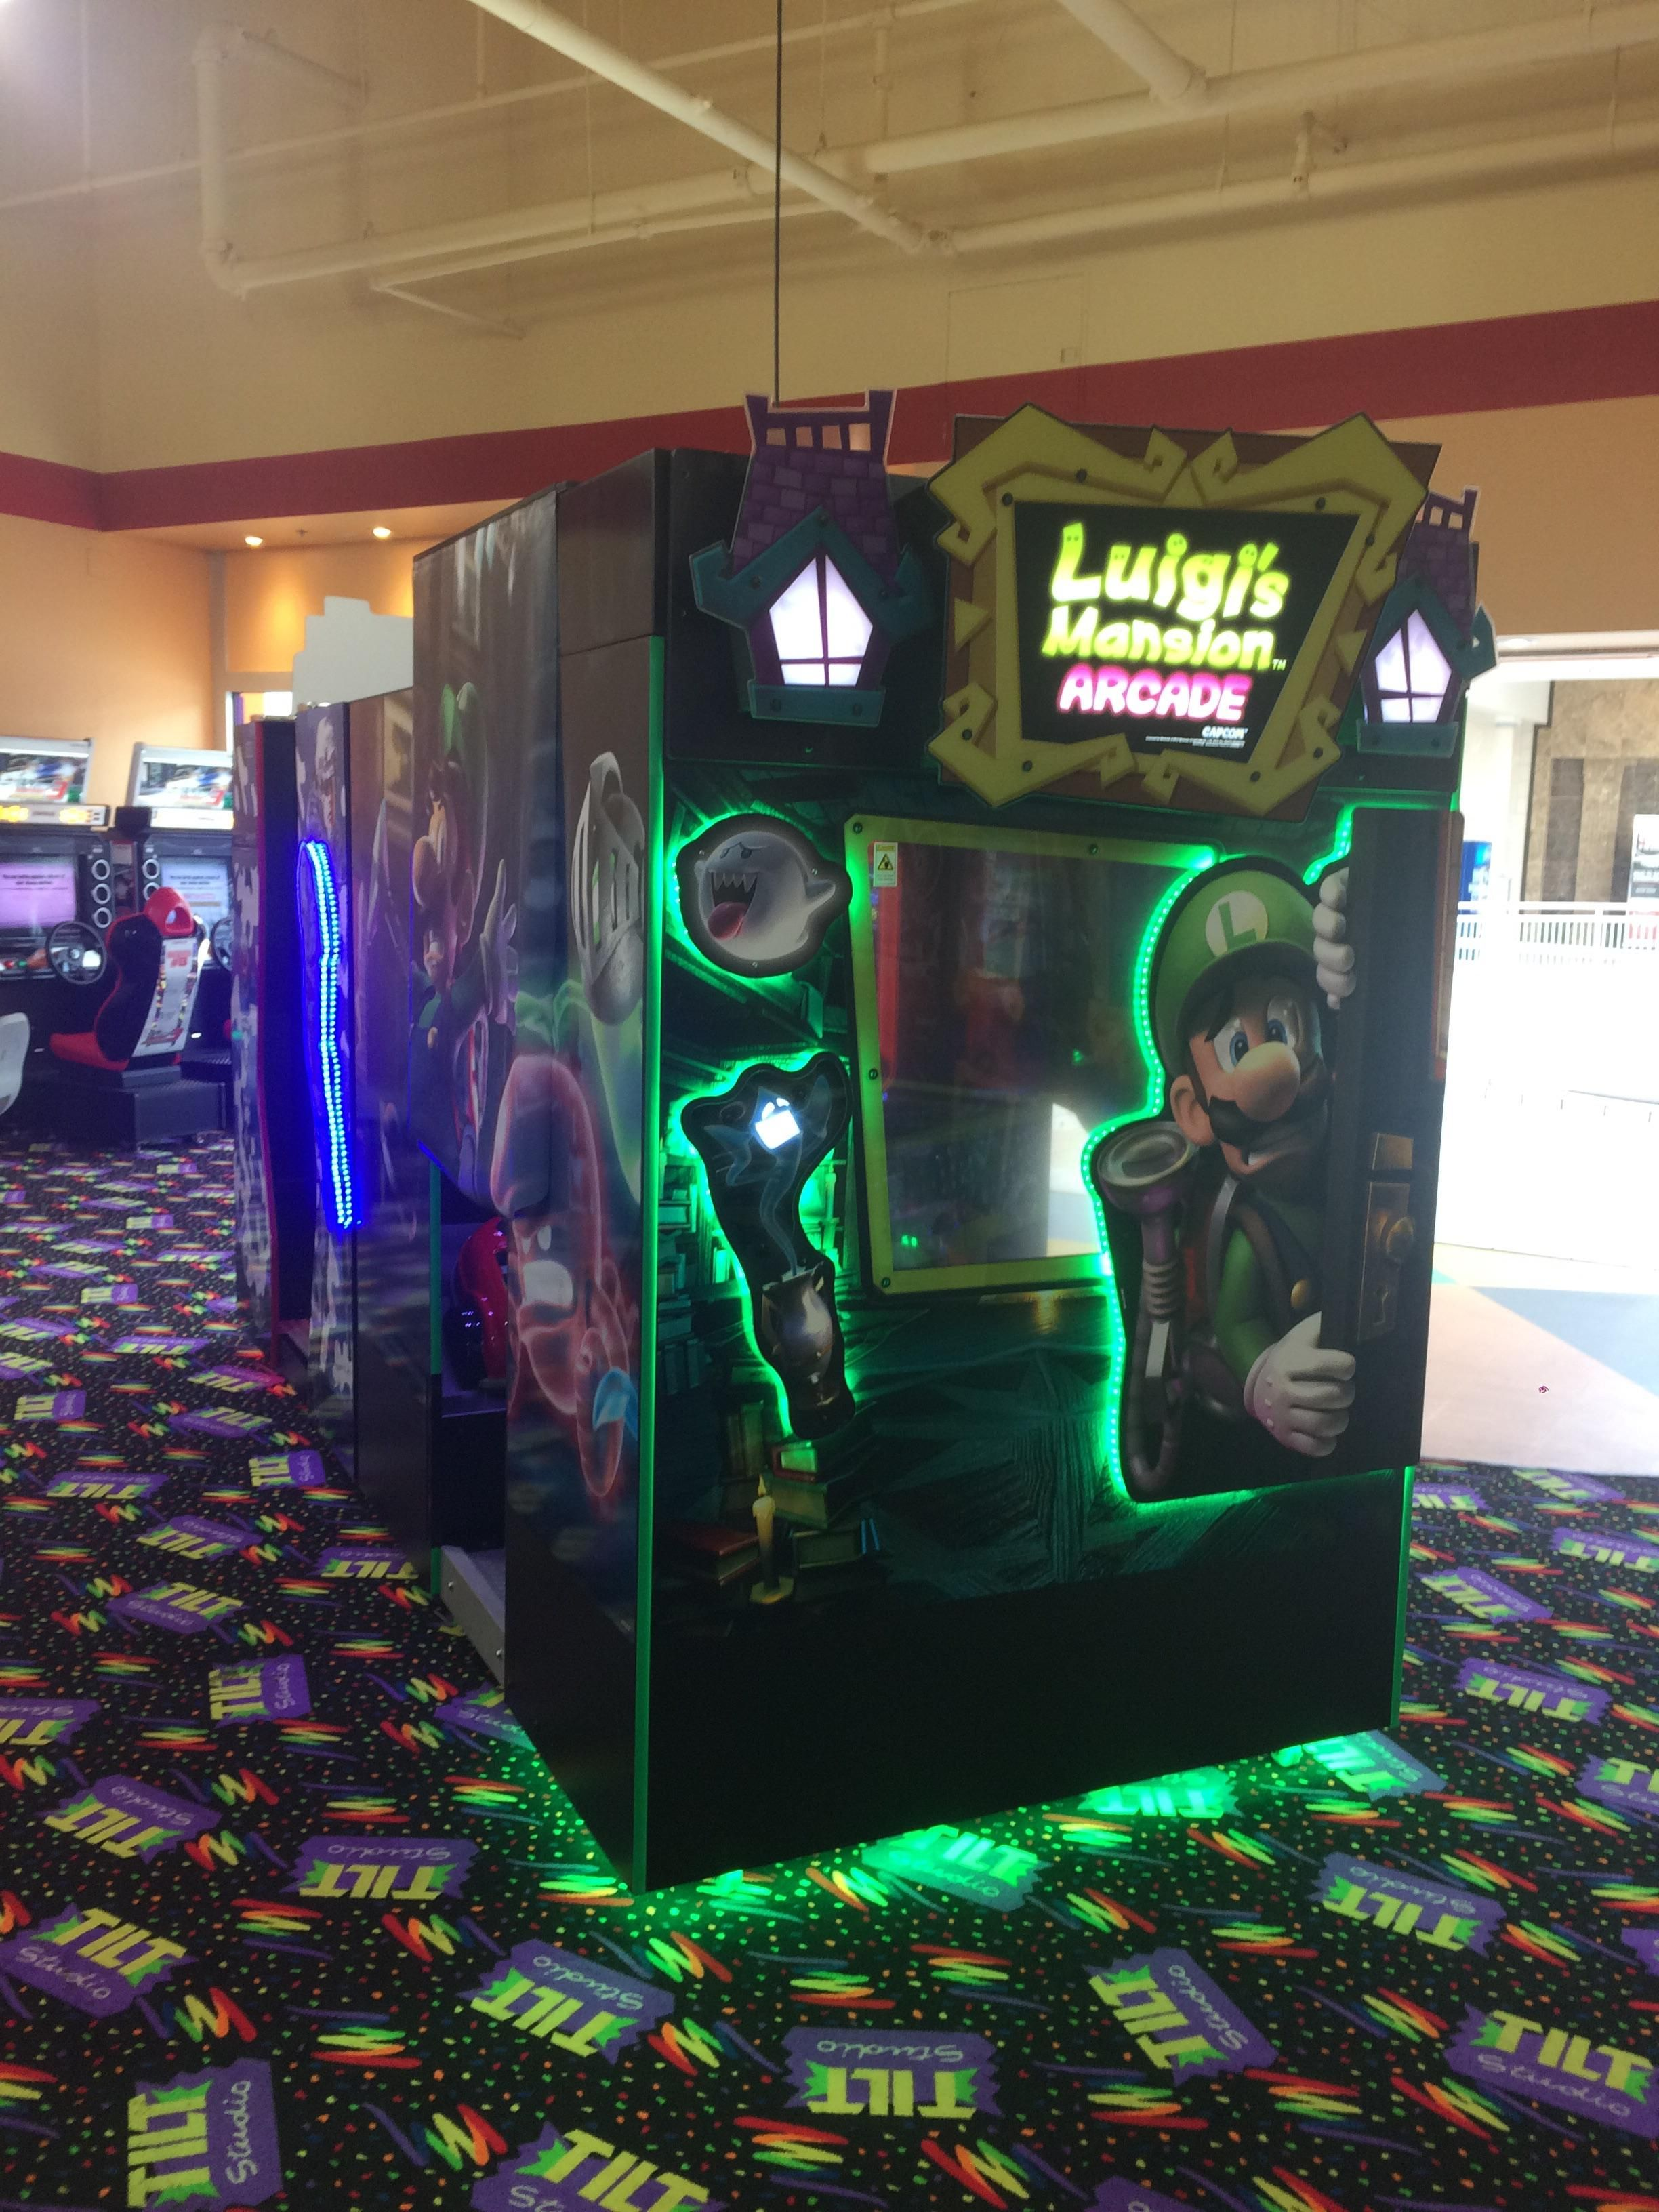 I didnt know they made an arcade version of luigis